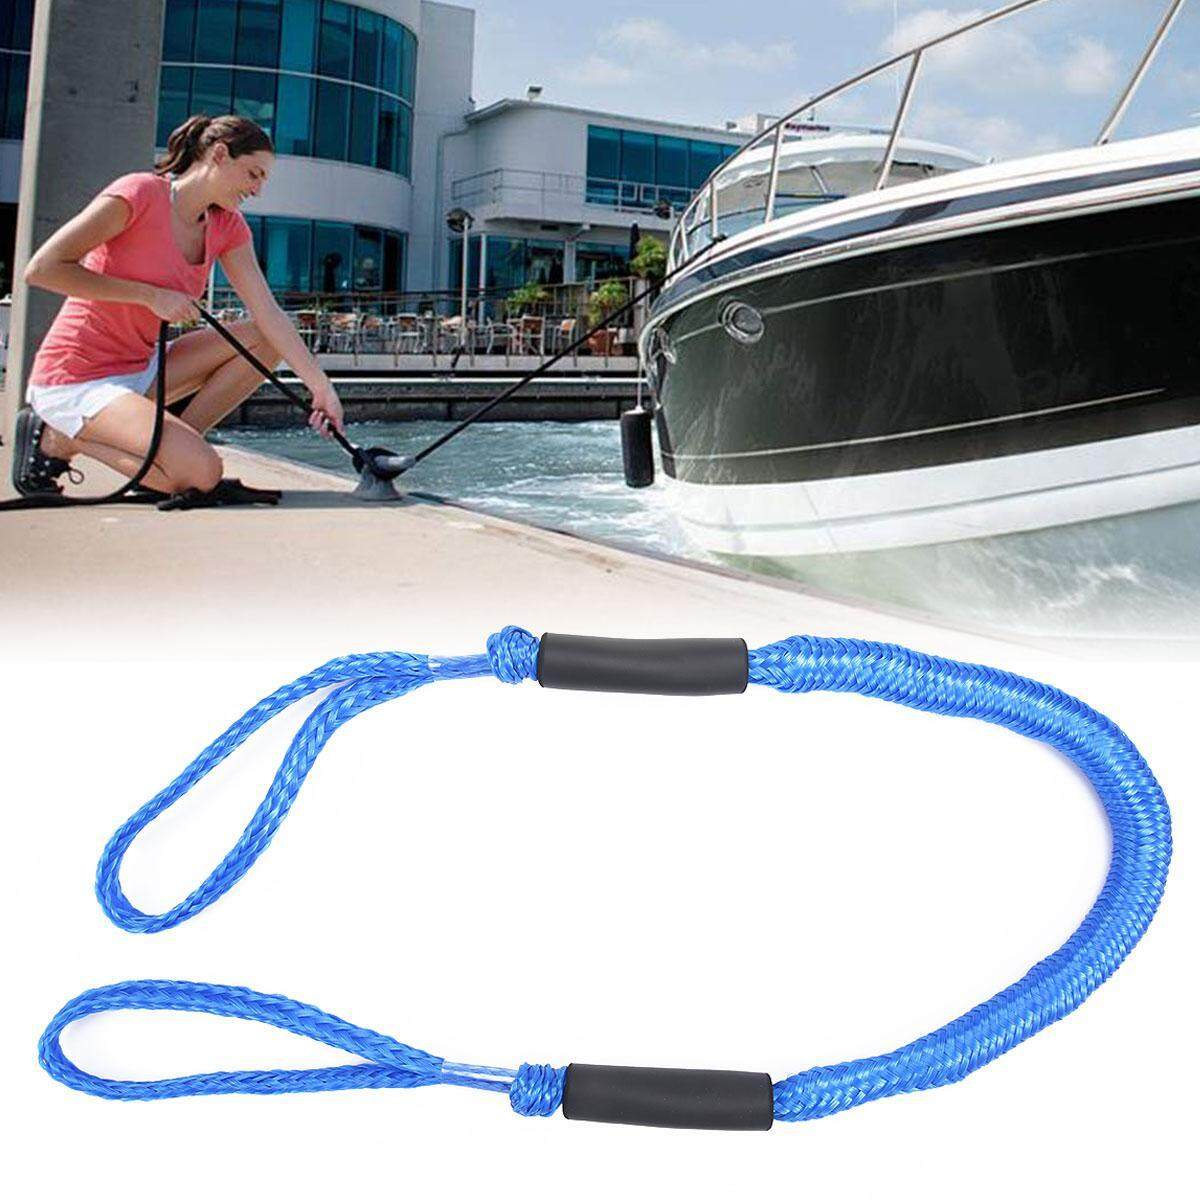 niceEshop Boat Dock Line 5ft, Mooring Rope for Boat with Two Protective Foam Float Stretchable Bungee Cords Line Ideal for Kayak,Jet Ski, PWC, Watercraft, SeaDoo,WaveRunner,Pontoon